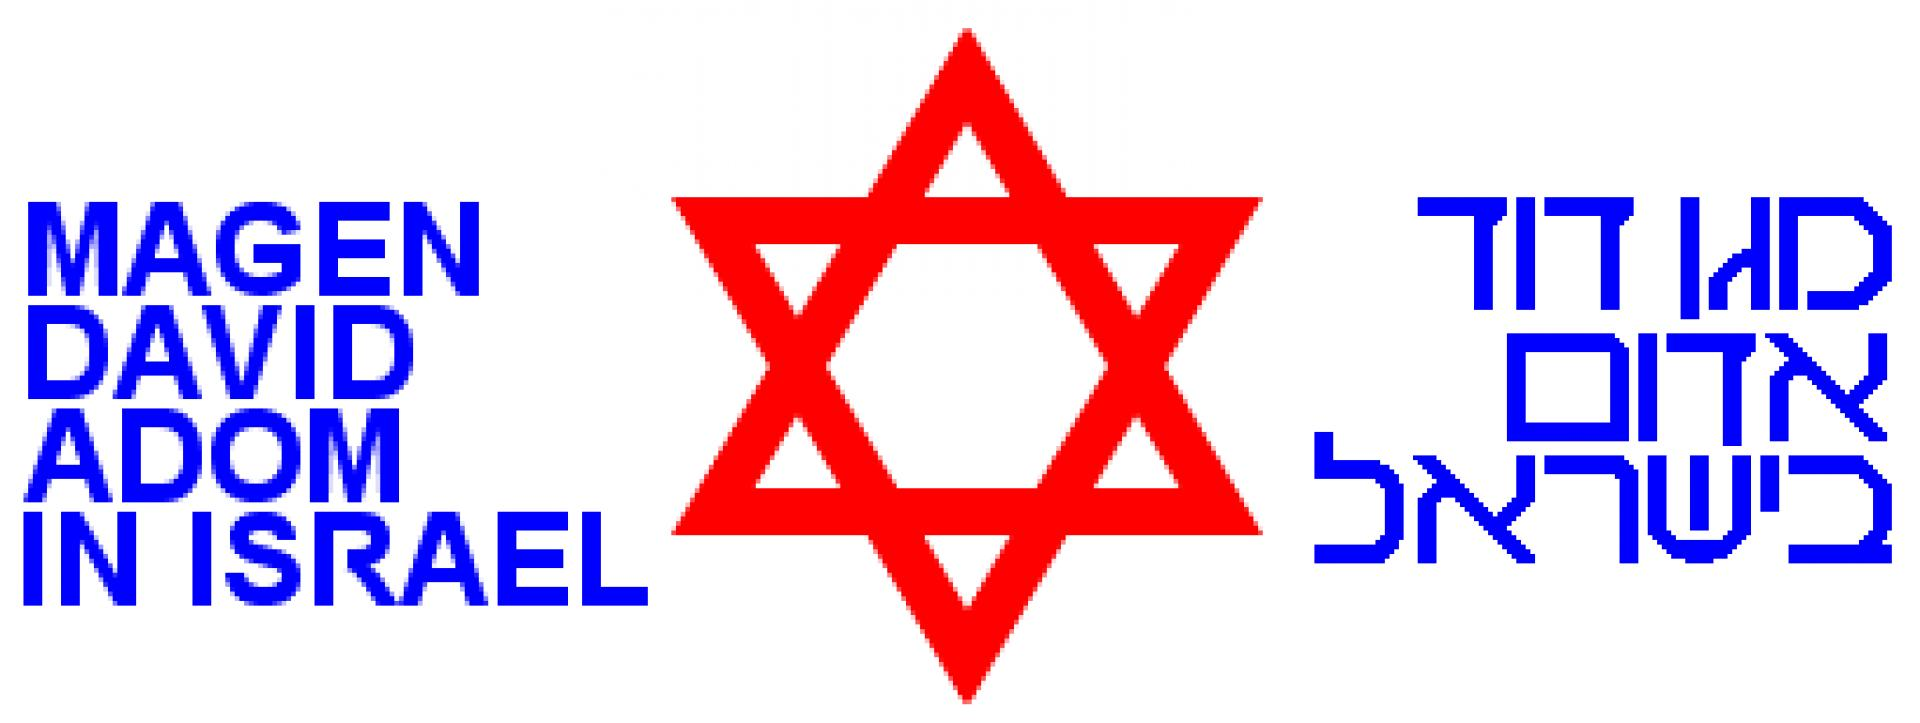 Magen David Adom ((Hebrew: מגן דוד אדום, abbr. MDA) logo